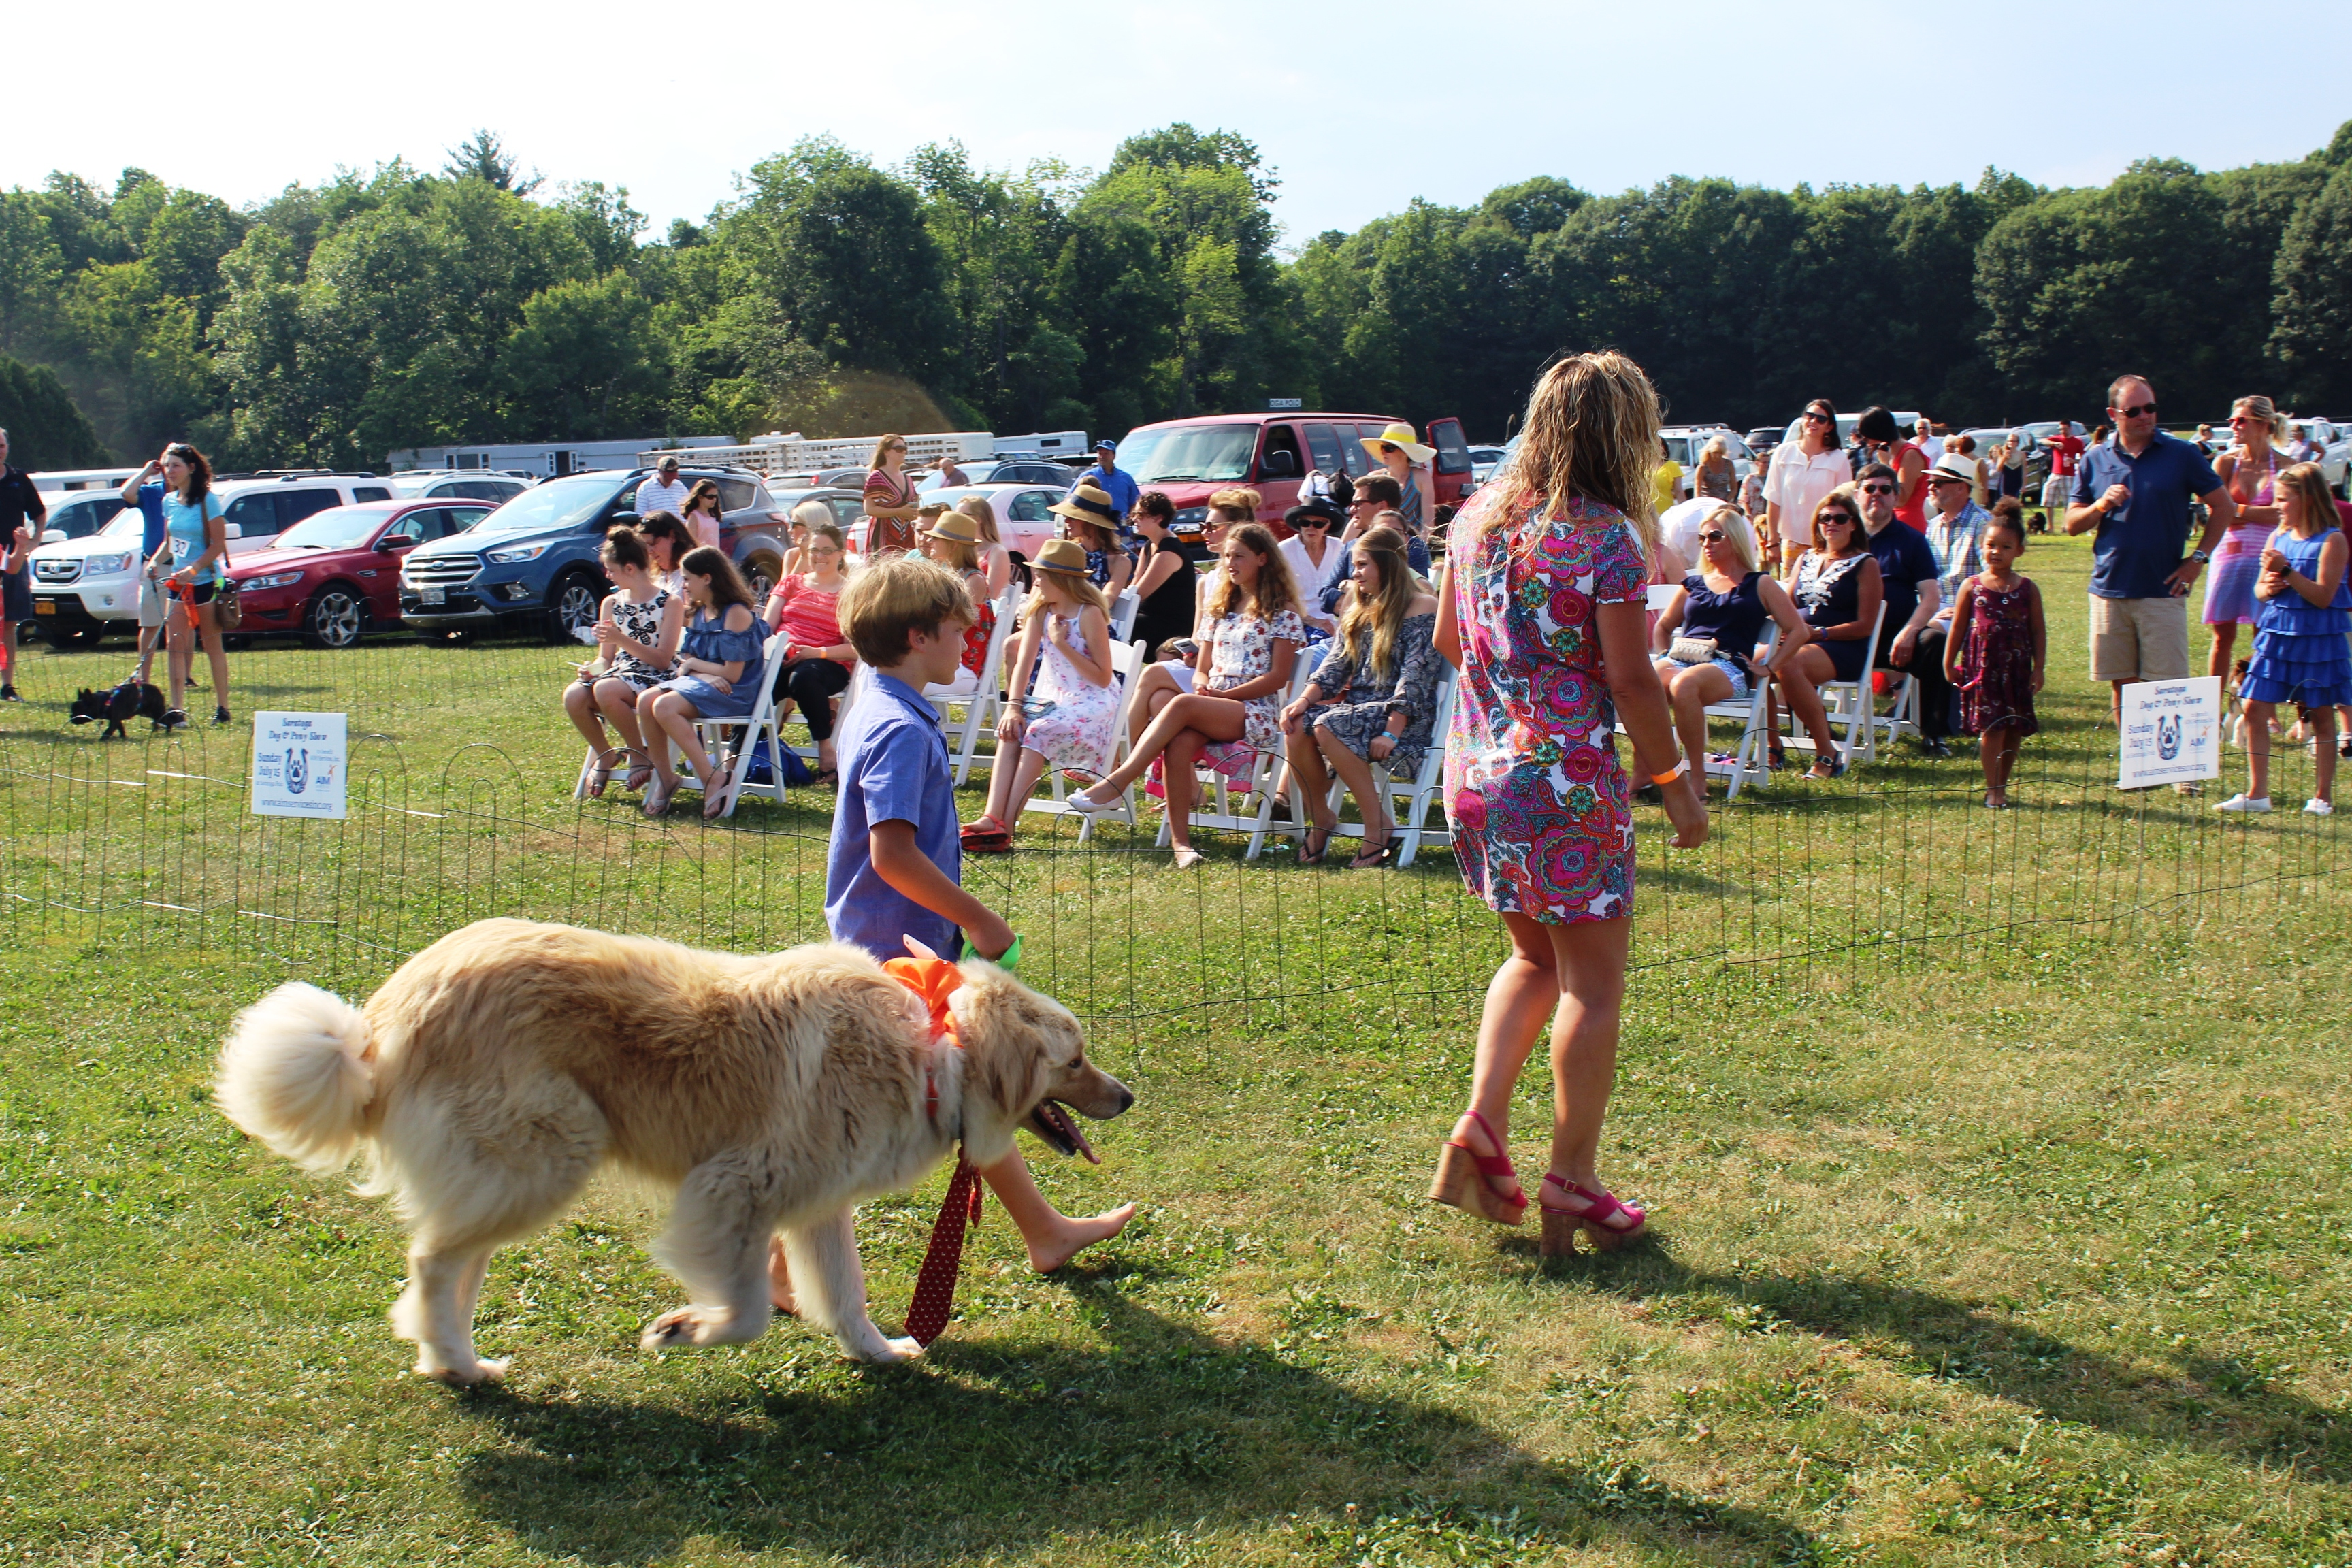 Young boy walking dog wearing a tie at the Saratoga Dog & Pony Show to benefit AIM Services, Inc.